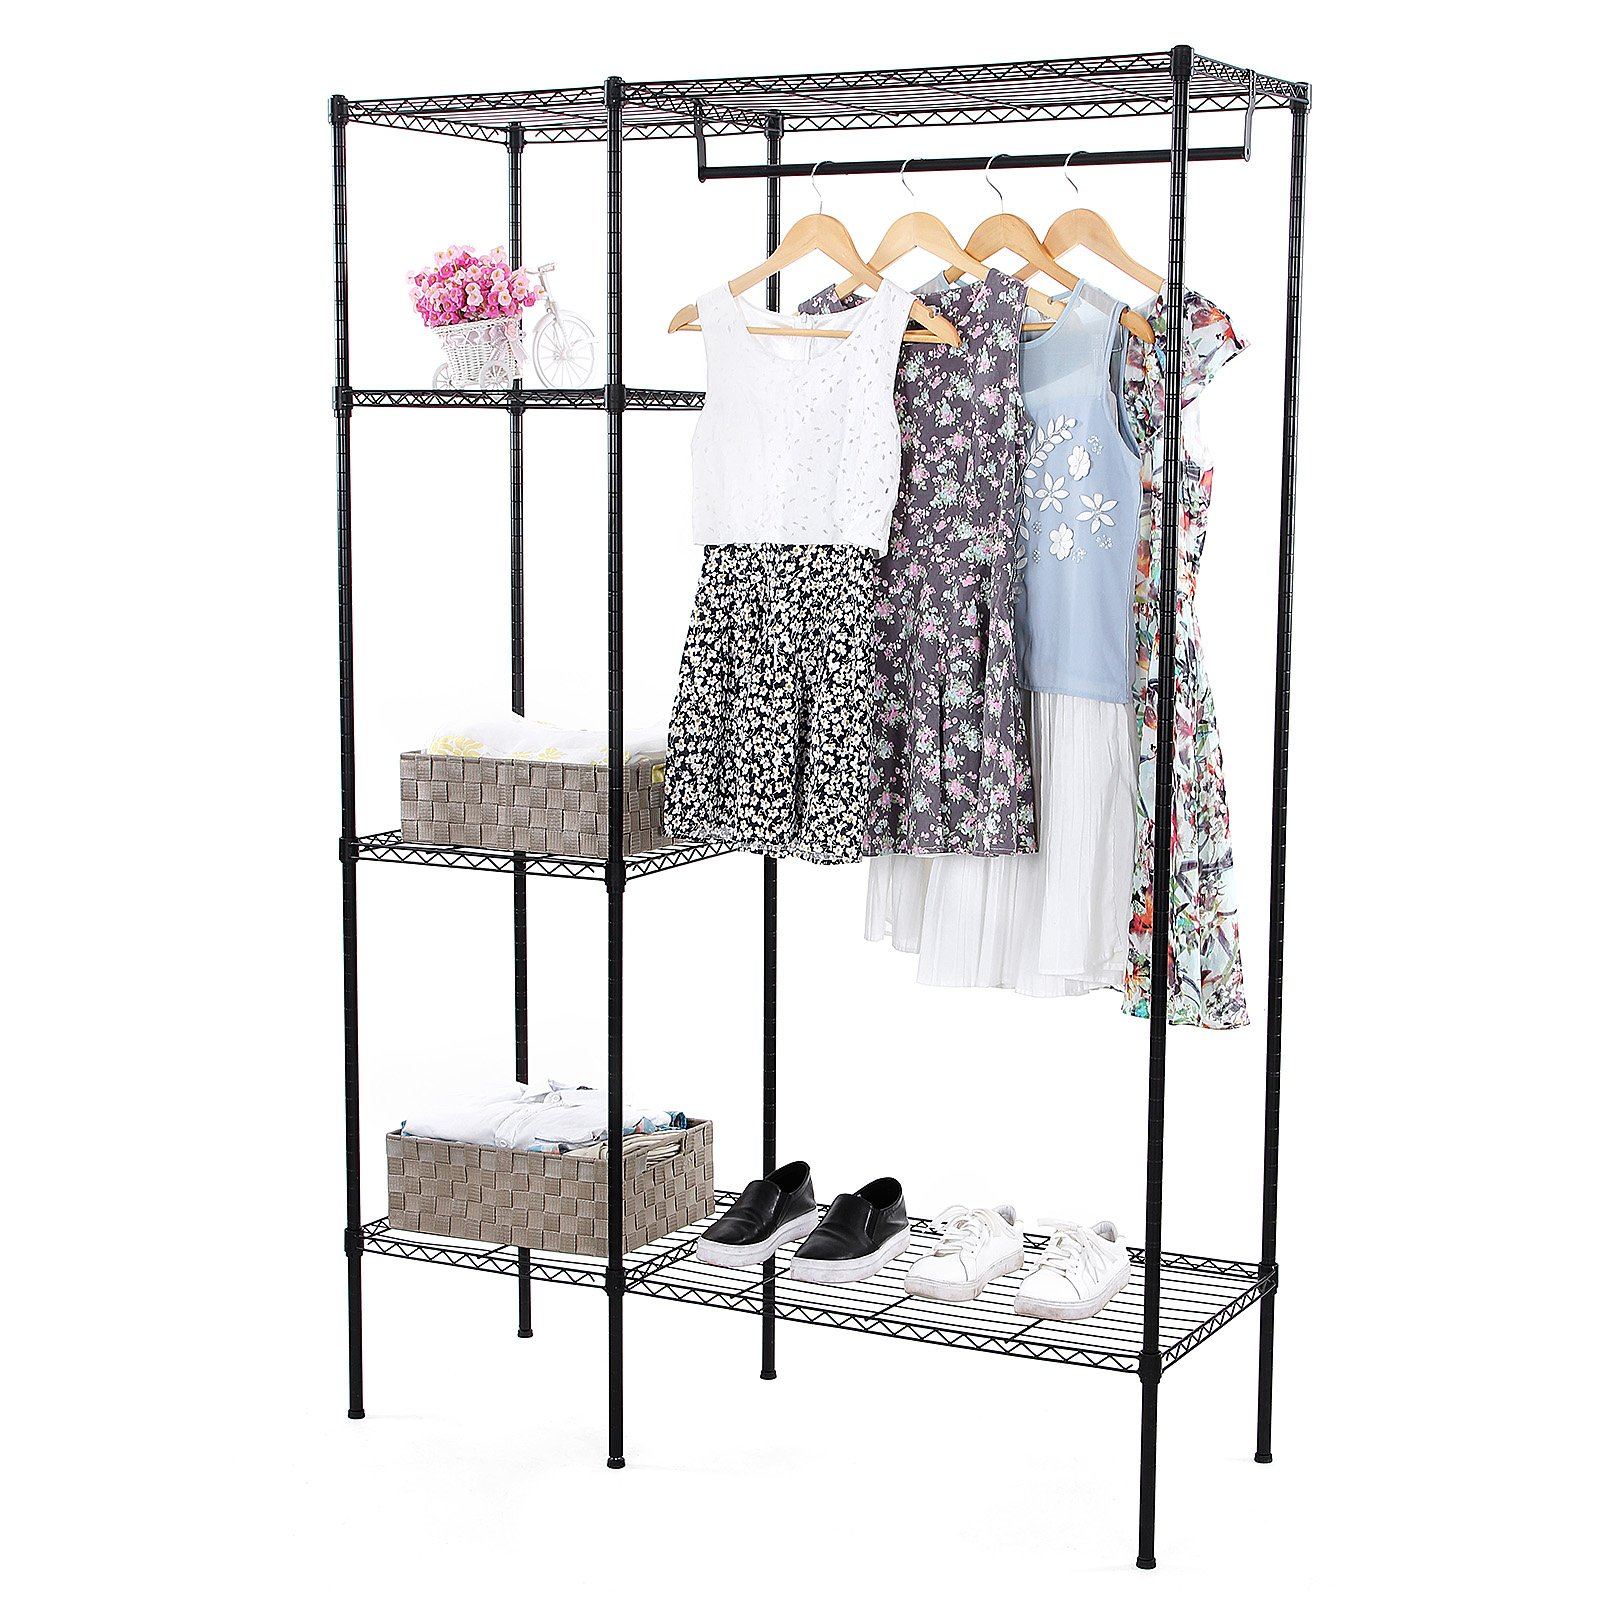 SONGMICS Extra-Large Shelving Garment Rack Heavy Duty Portable Clothes Wardrobe Free-Standing Closet Storage Organizer ULGR12P